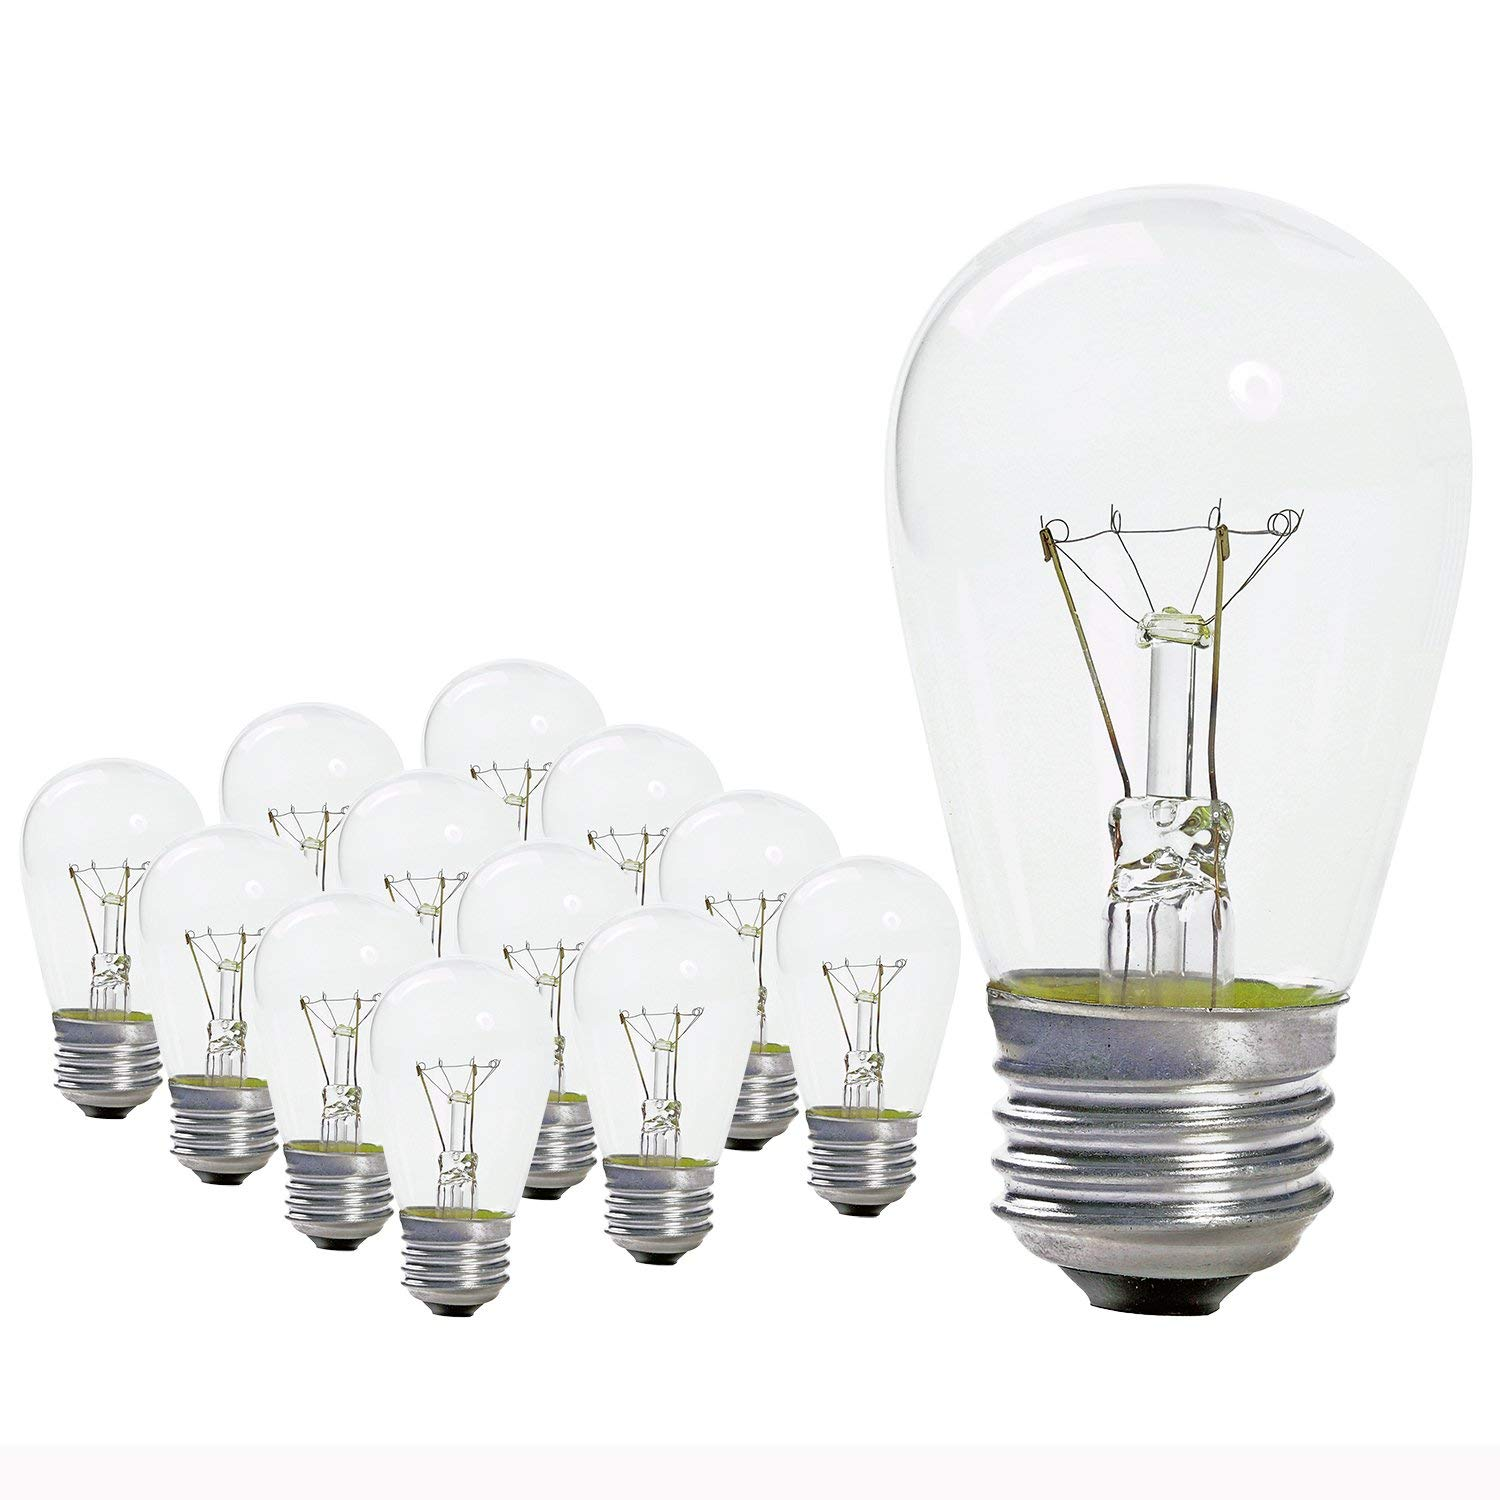 UL-Listed S14 2W Dimmable E26 Edison Light Bulbs for Outdoor String Lights Replacement Bulbs 2W LED Bulbs 15-Pack YiLighting